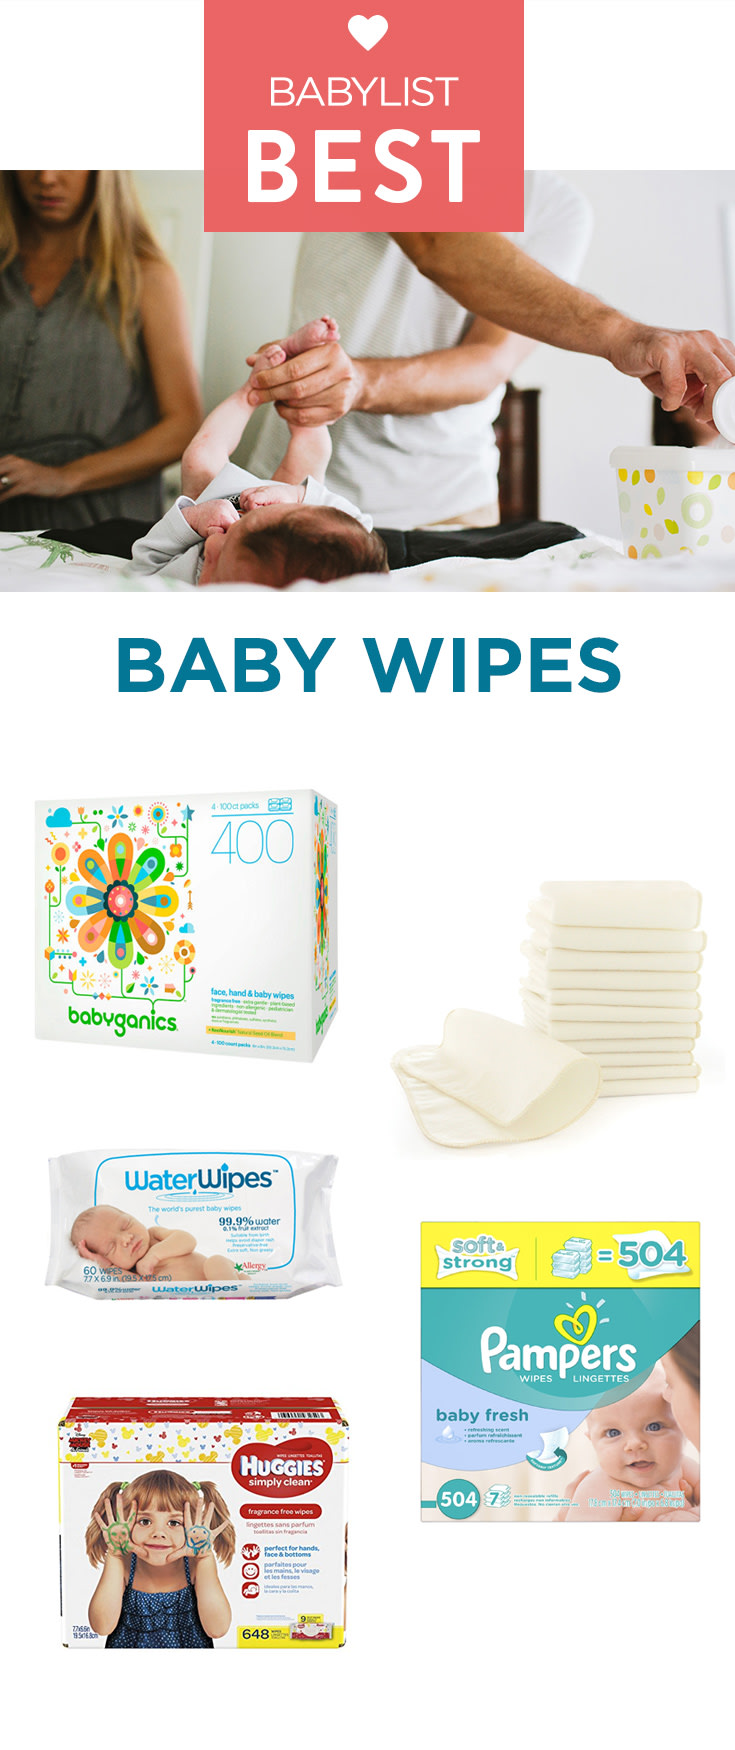 Best Baby Wipes 2019 6 Best Baby Wipes of 2019